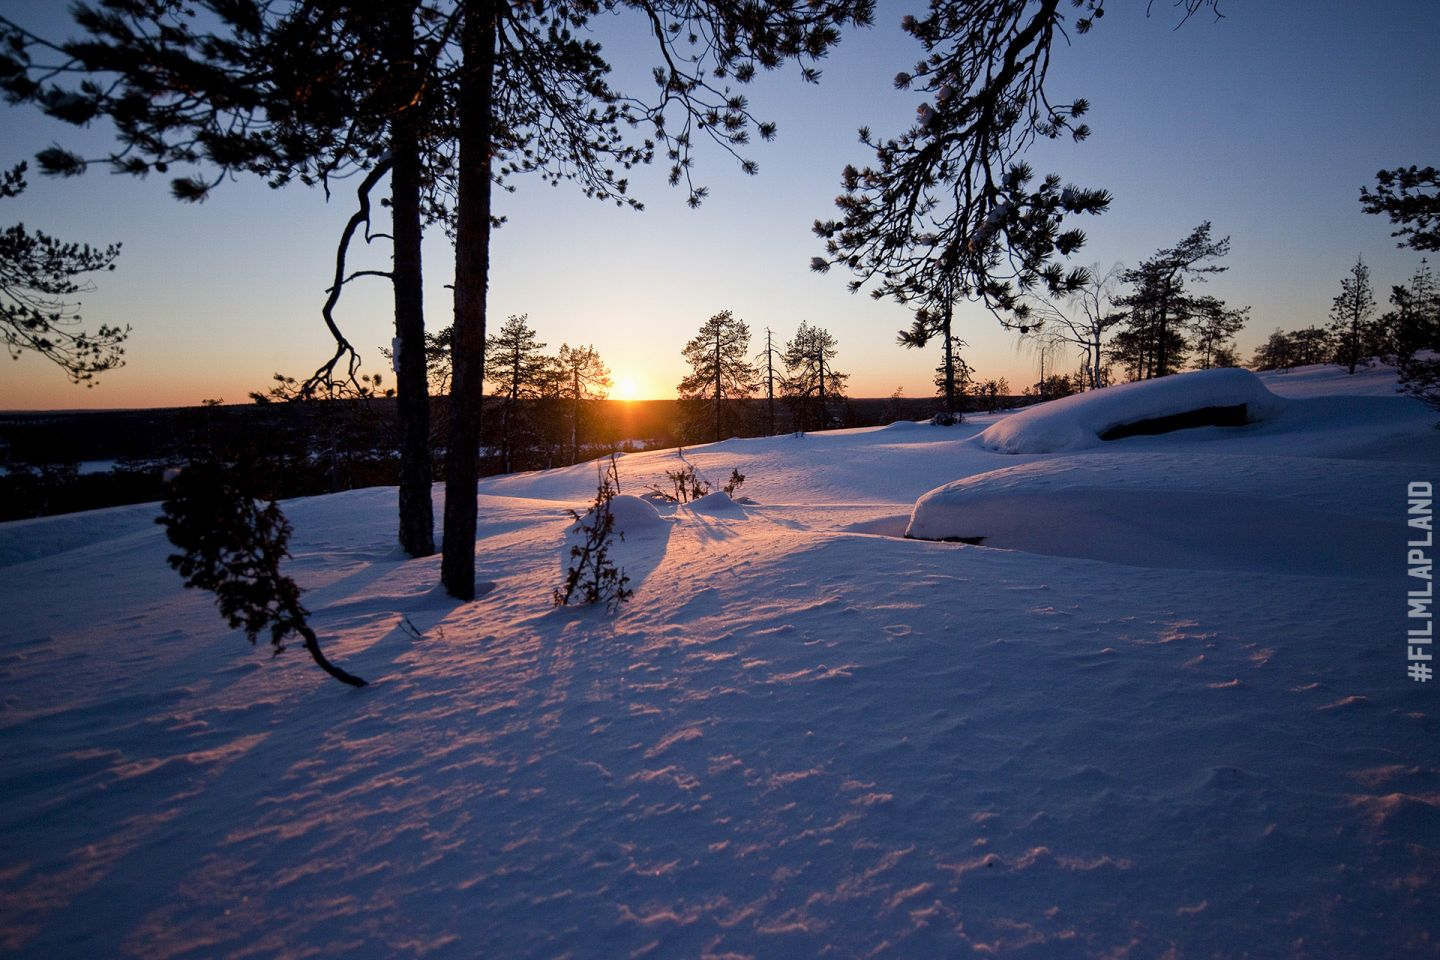 Sunset and snowy field in Rovaniemi, Finland